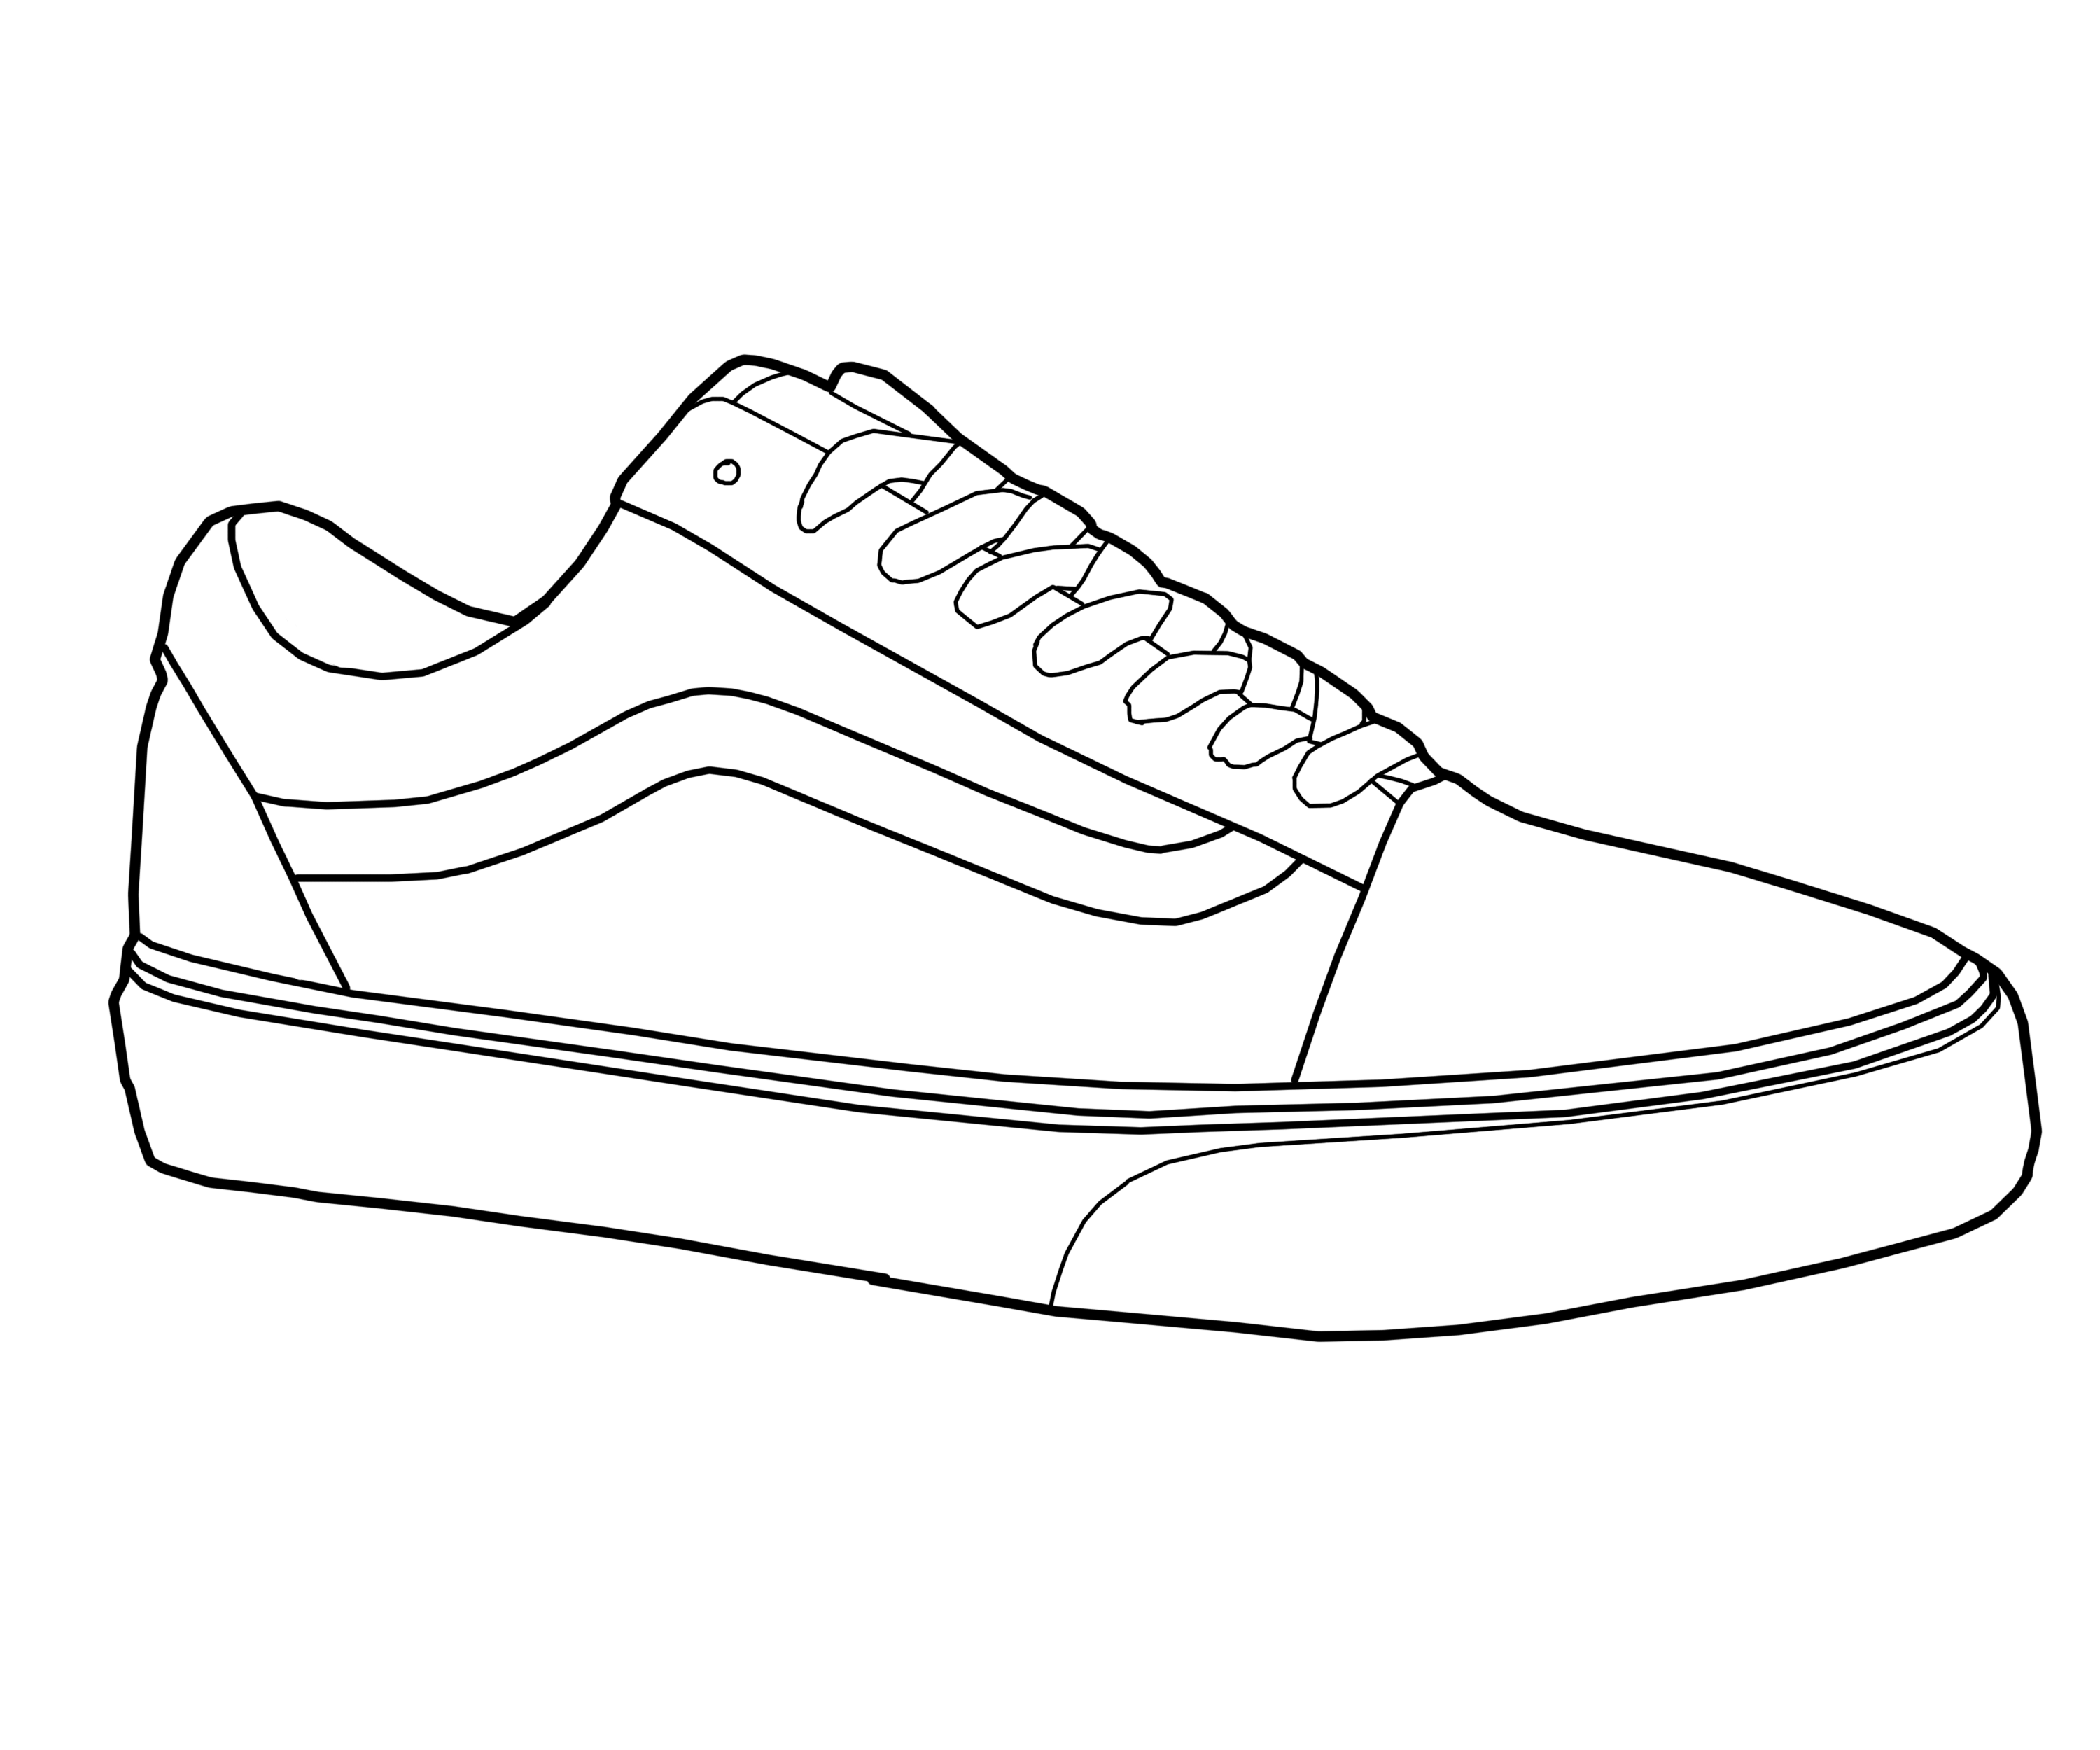 Pin By 威翔 On Coloring Pages In 2019 Pinterest Sneaker.